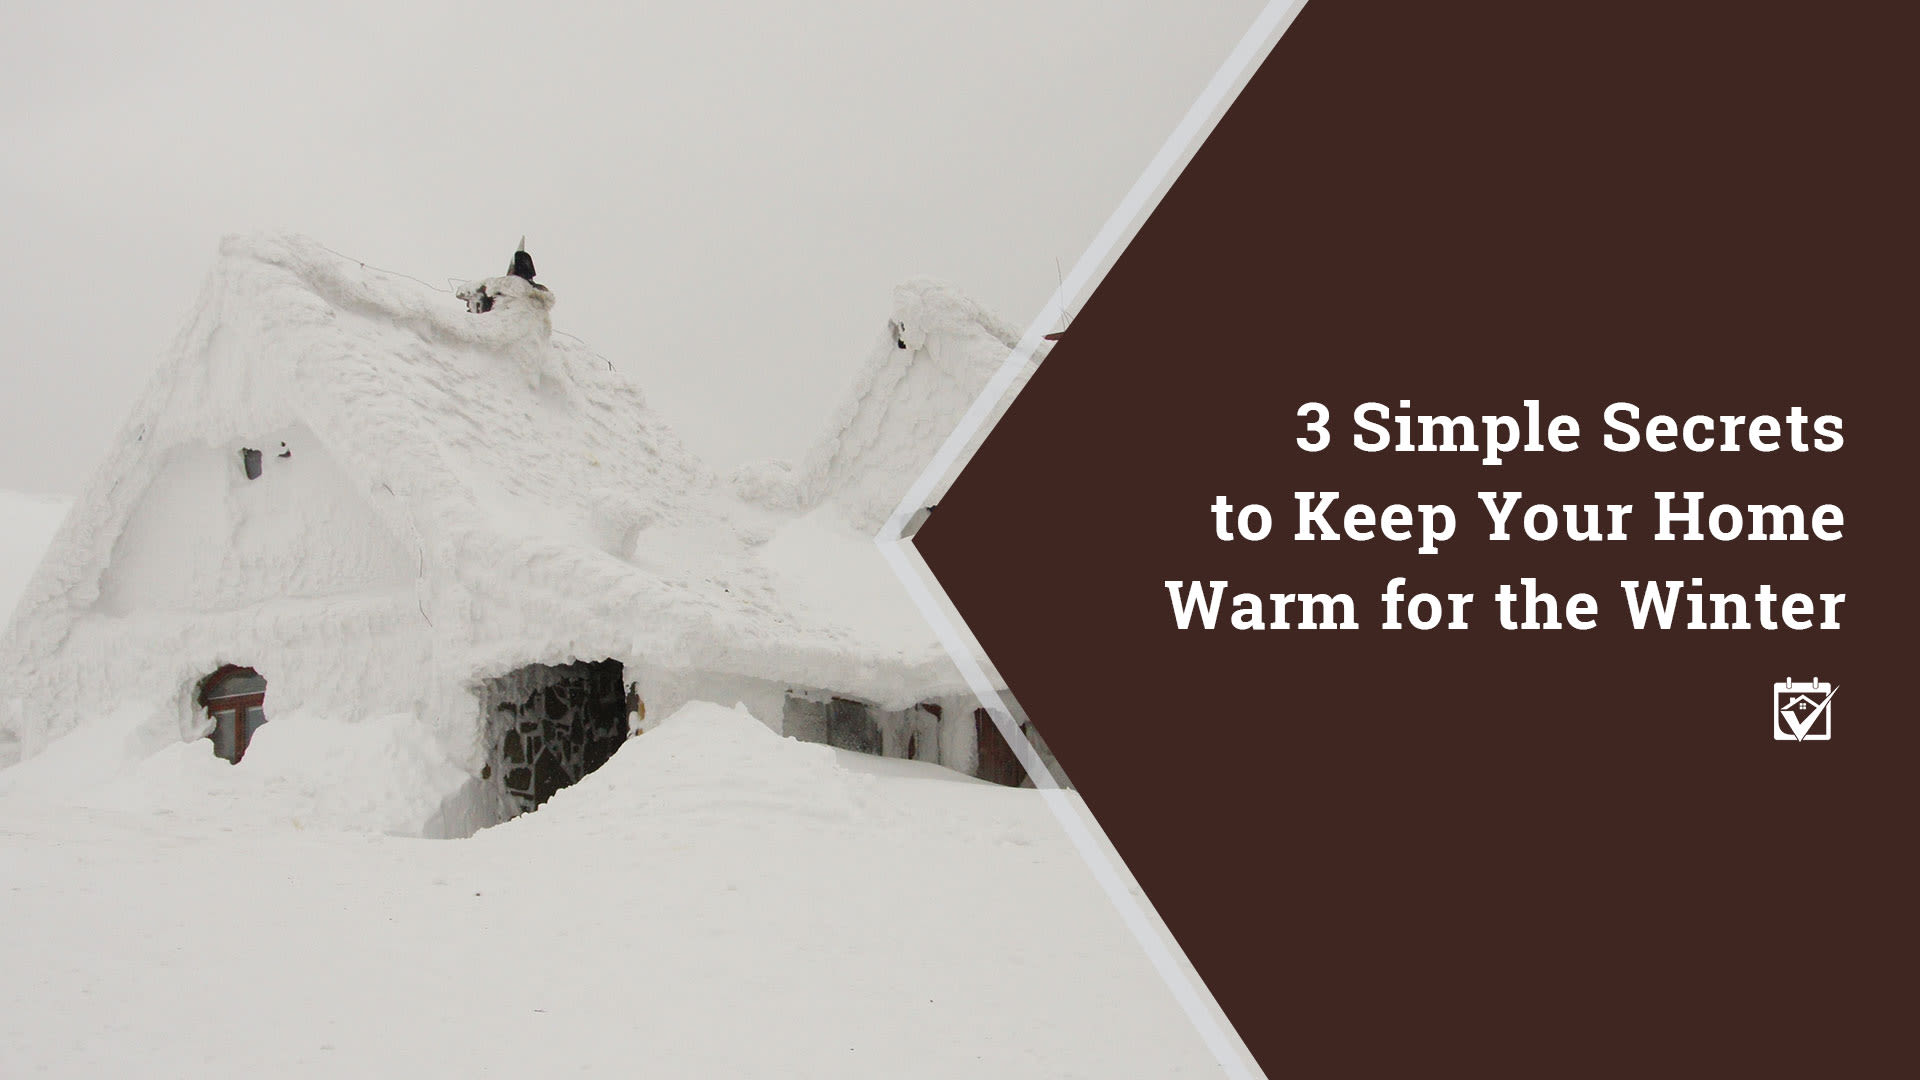 Keeping Your Home Warn for Winter